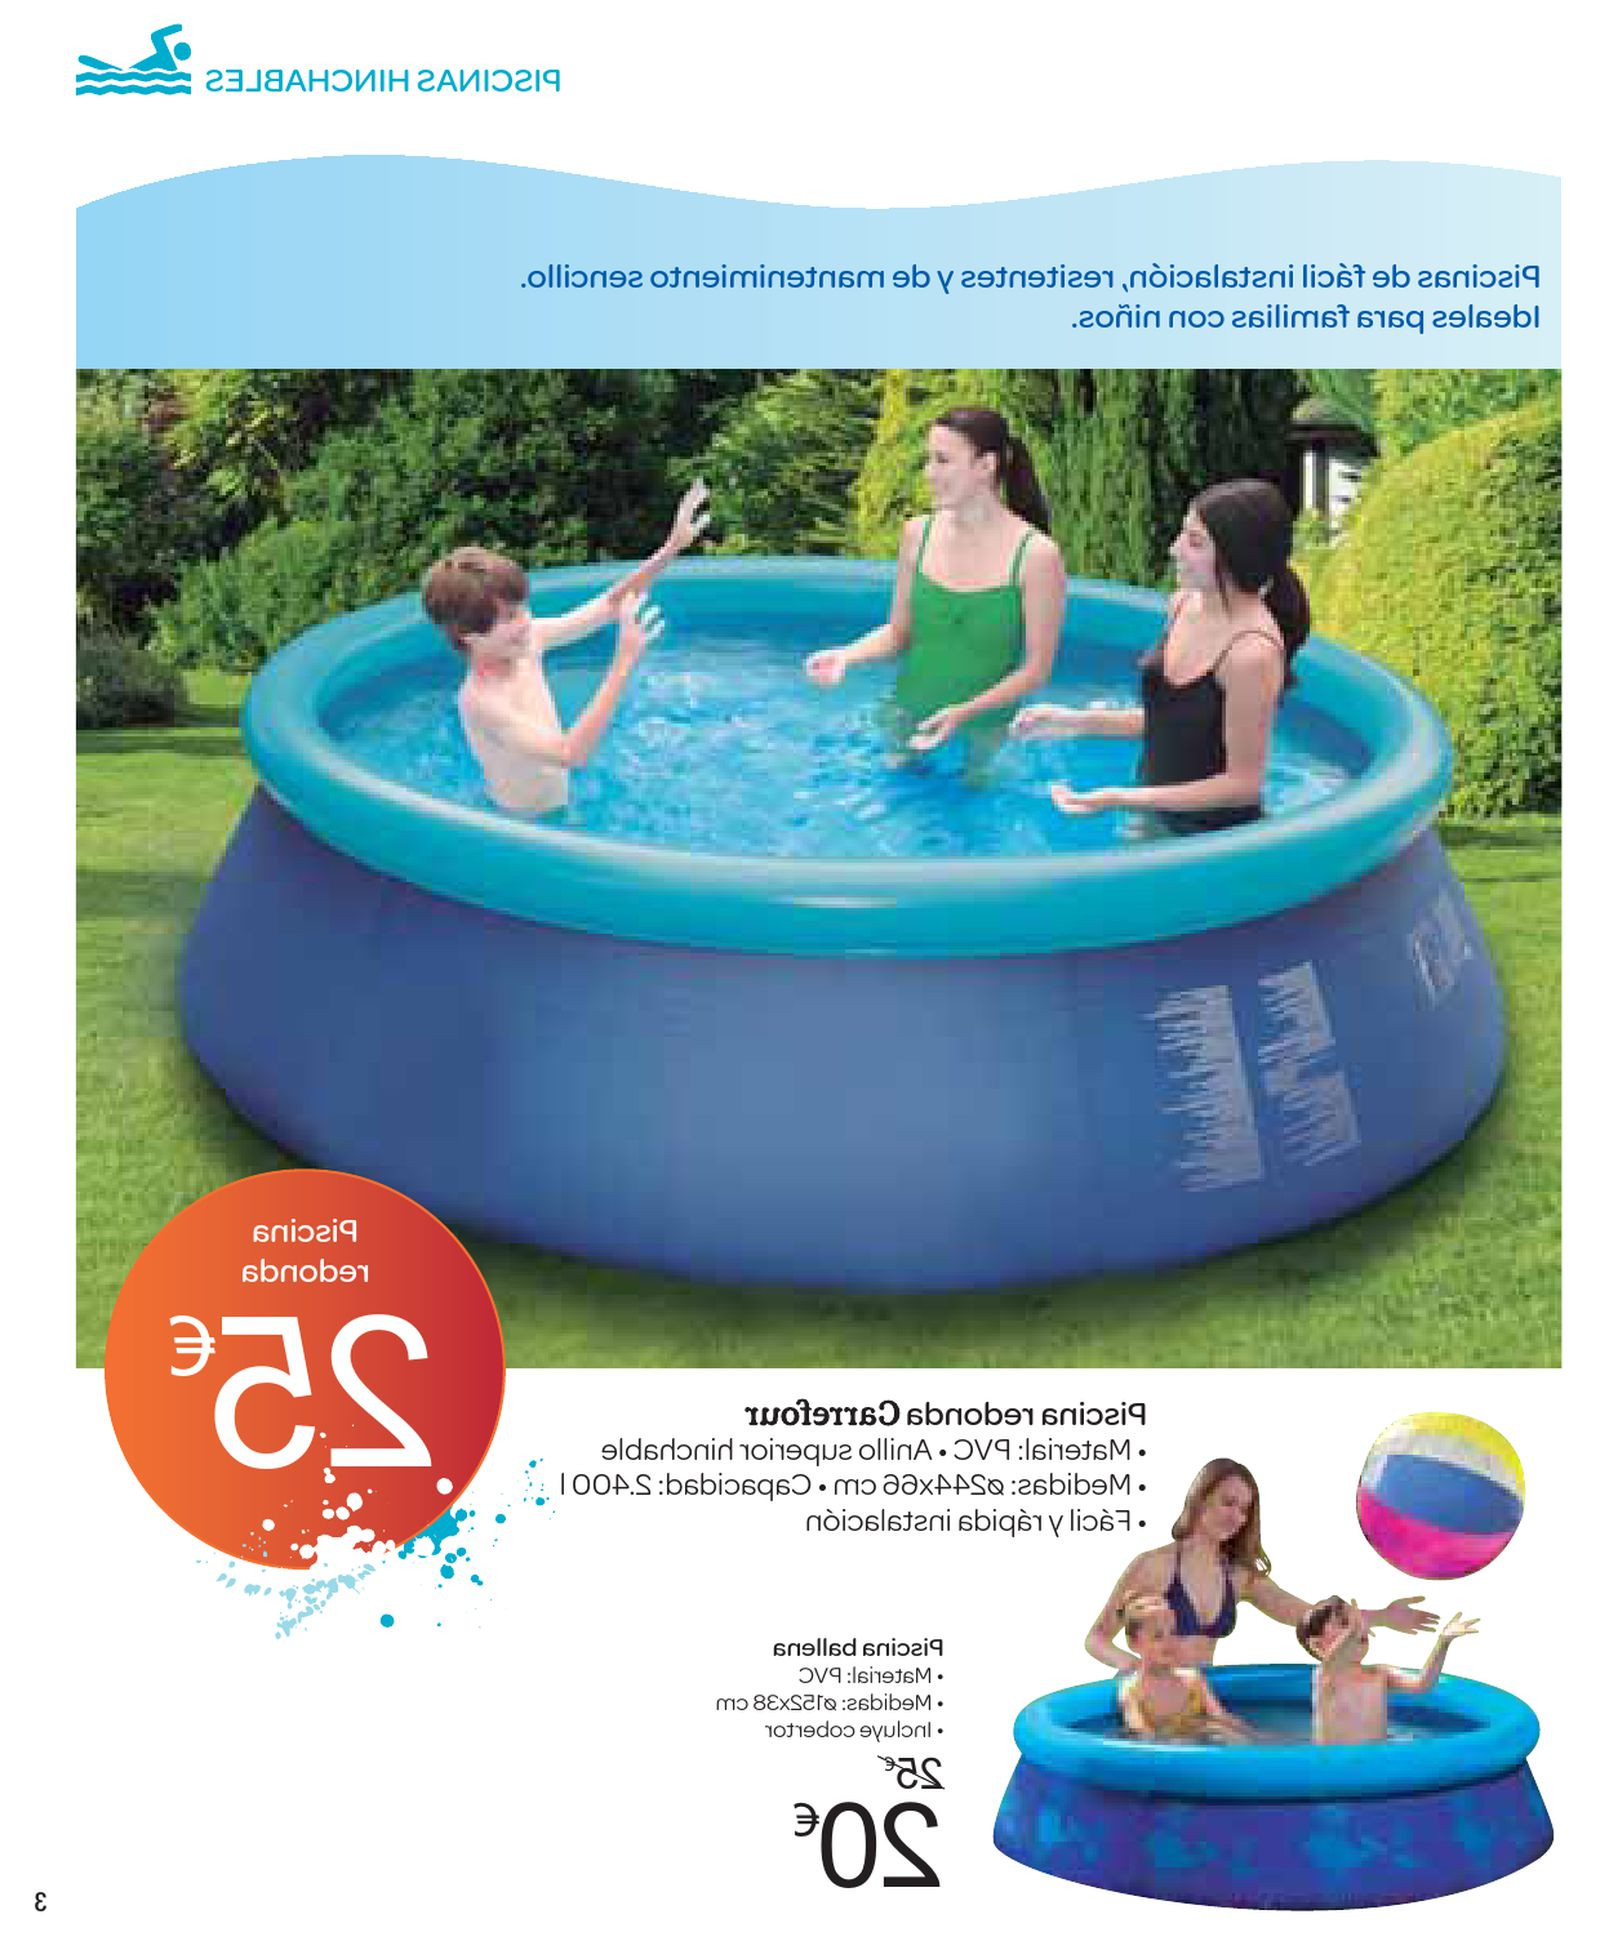 Carrefour Piscinas Hinchables Infantiles Alcampo Colchon Hinchable Nkde Colchones Hinchables Para Camping